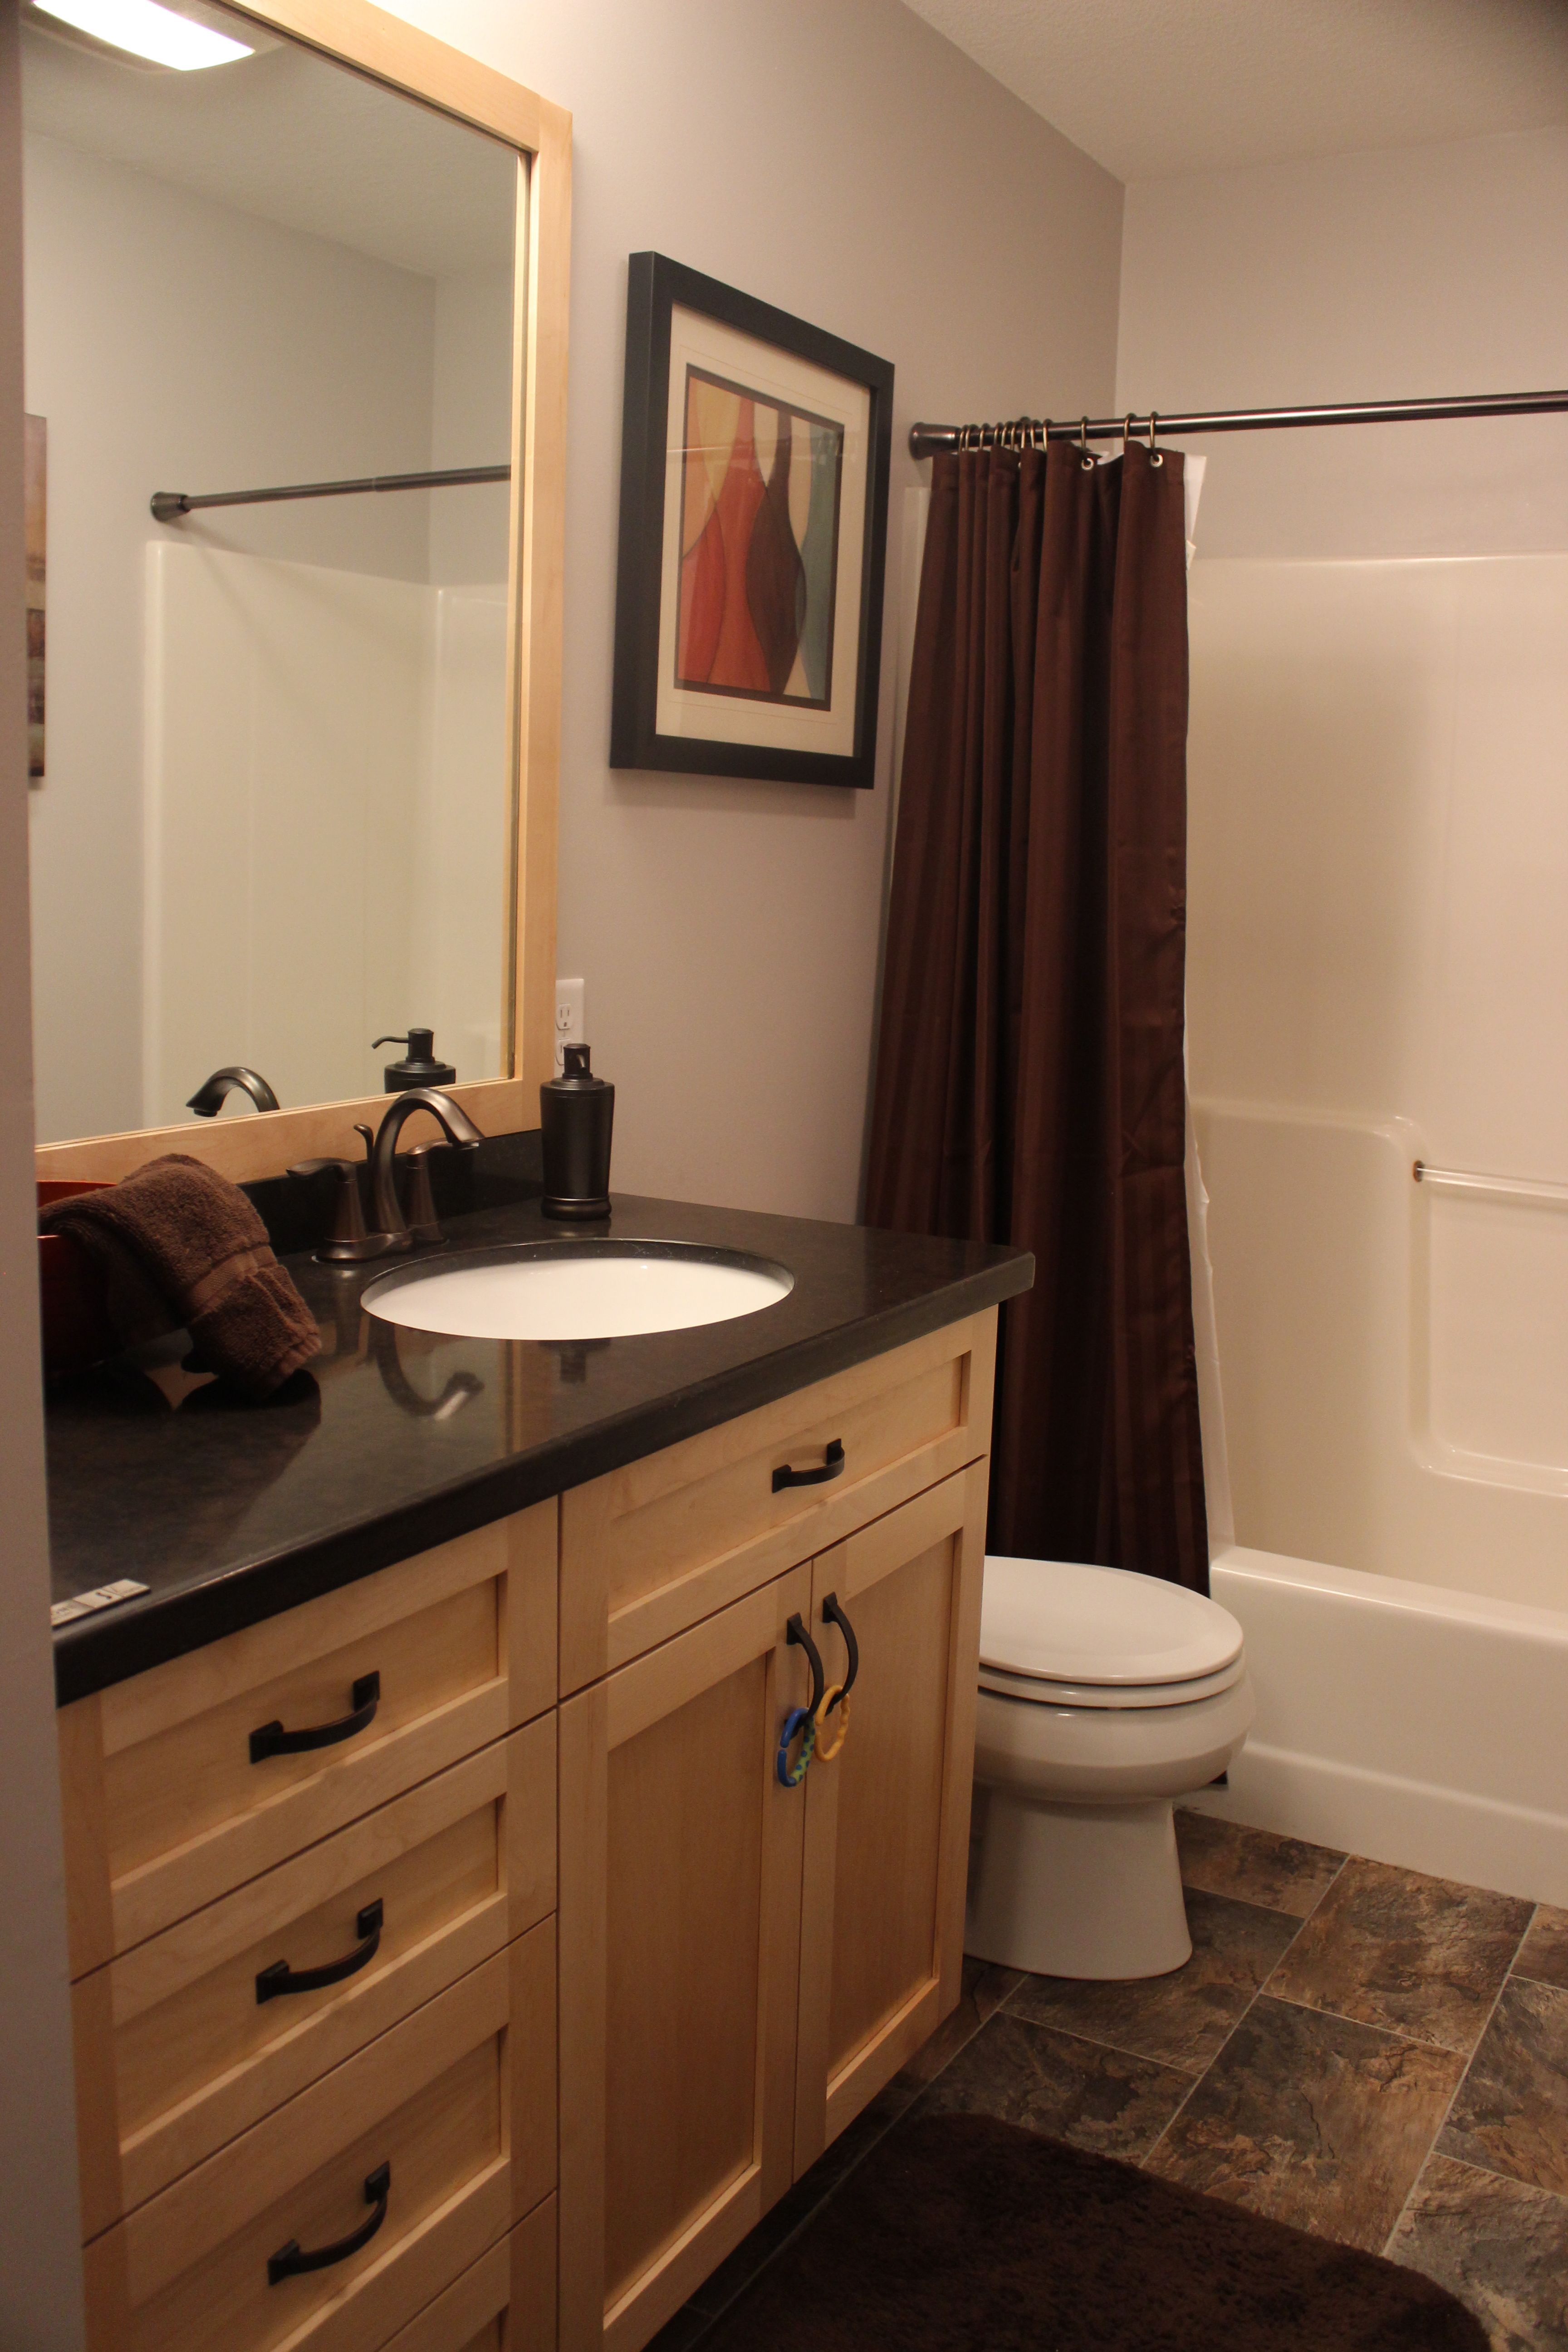 72 Double Sink Bathroom Countertop